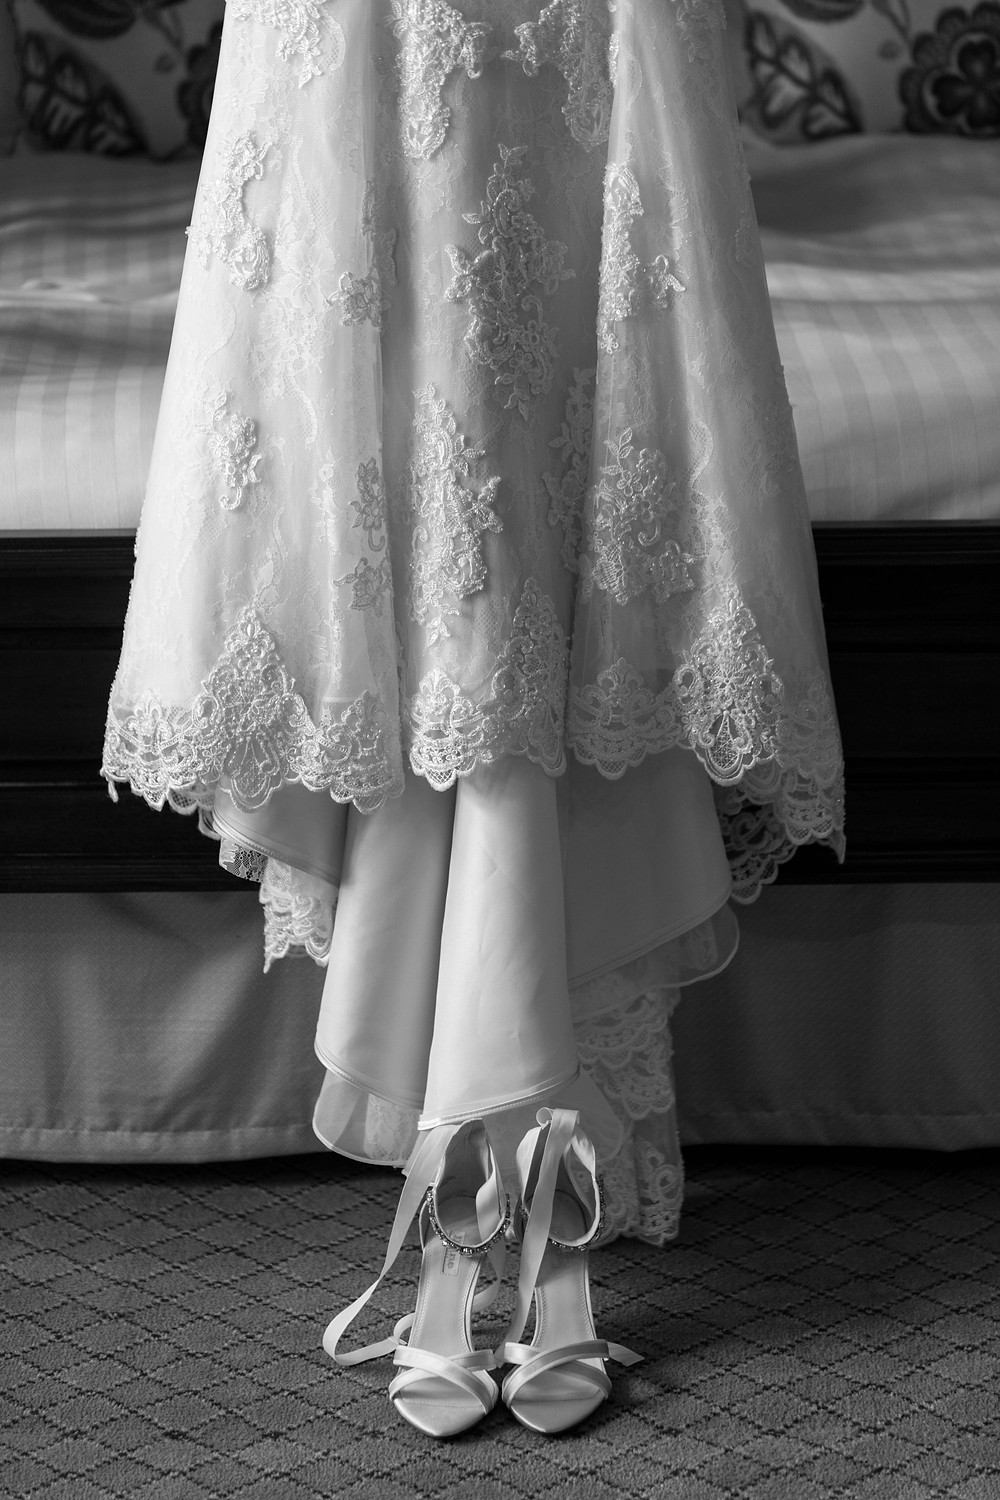 Close up photograph of the brides dress